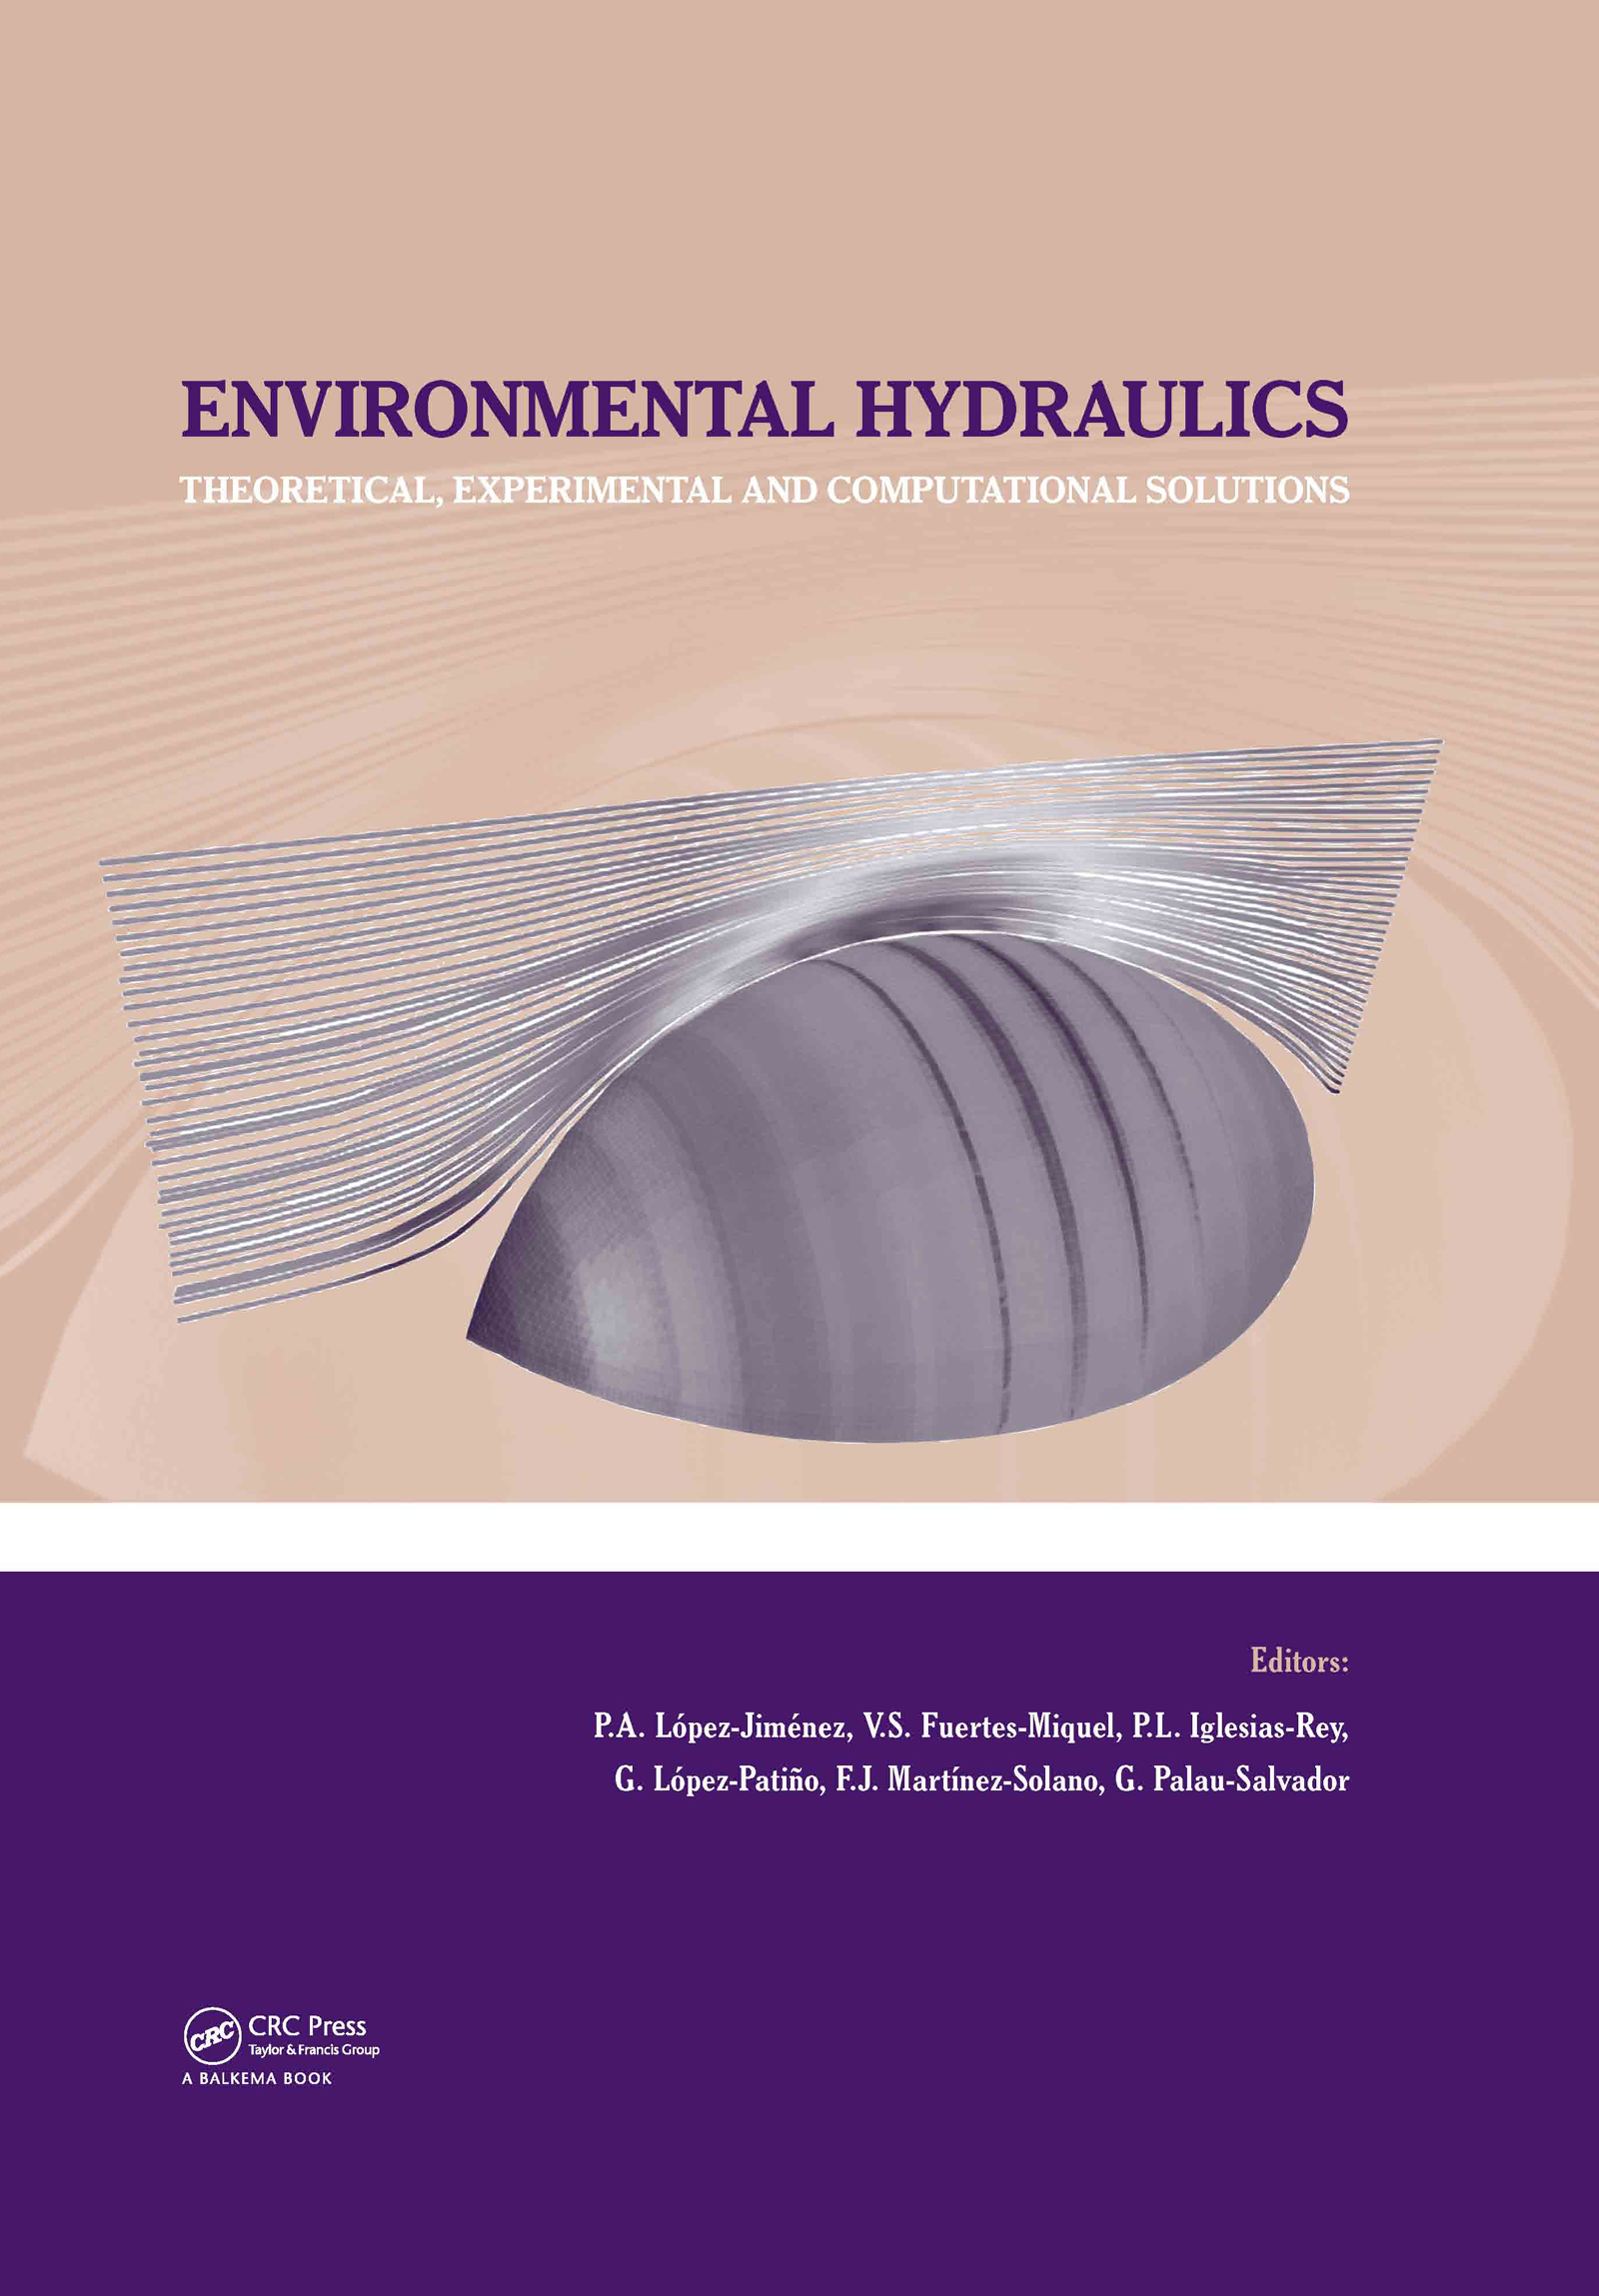 Environmental Hydraulics - Theoretical, Experimental and Computational Solutions: Proceedings of the International Workshop on Environmental Hydraulics, IWEH09, 29 & 30 October 2009, Valencia, Spain, 1st Edition (Hardback) book cover